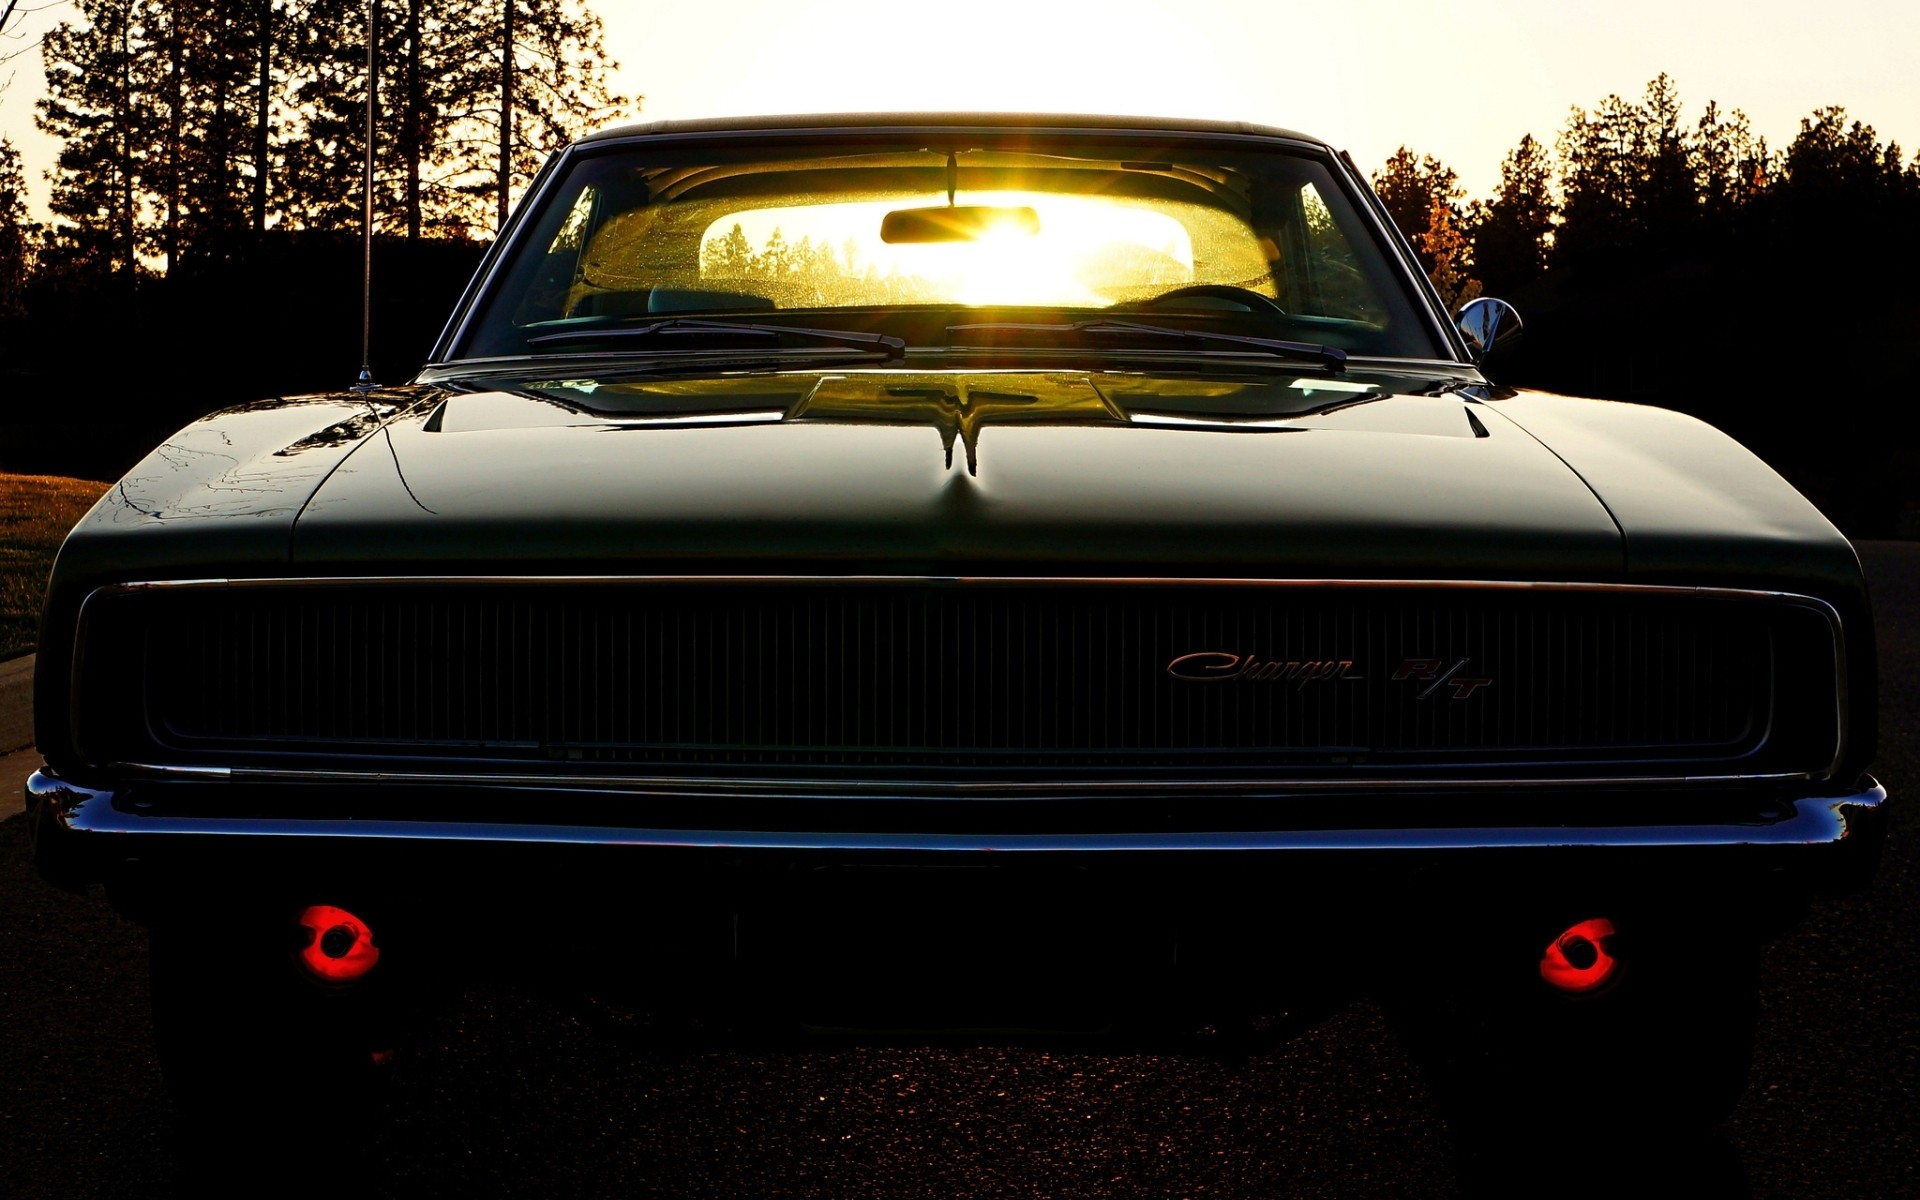 Old School Dodge Charger wallpapers Old School Dodge Charger stock 1920x1200